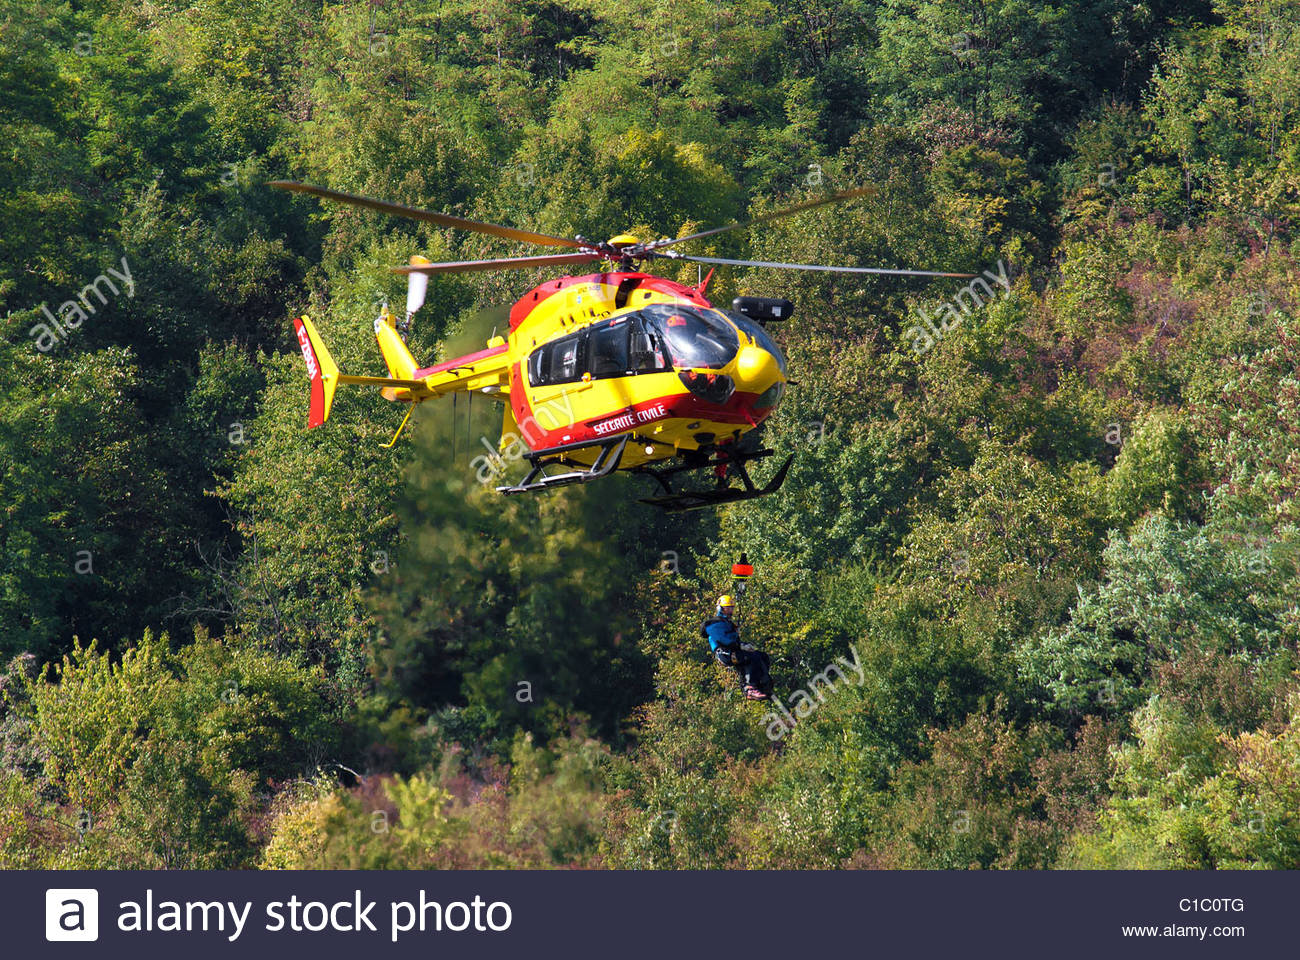 EC 145 helicopter of french search and rescue service in action - Stock Image